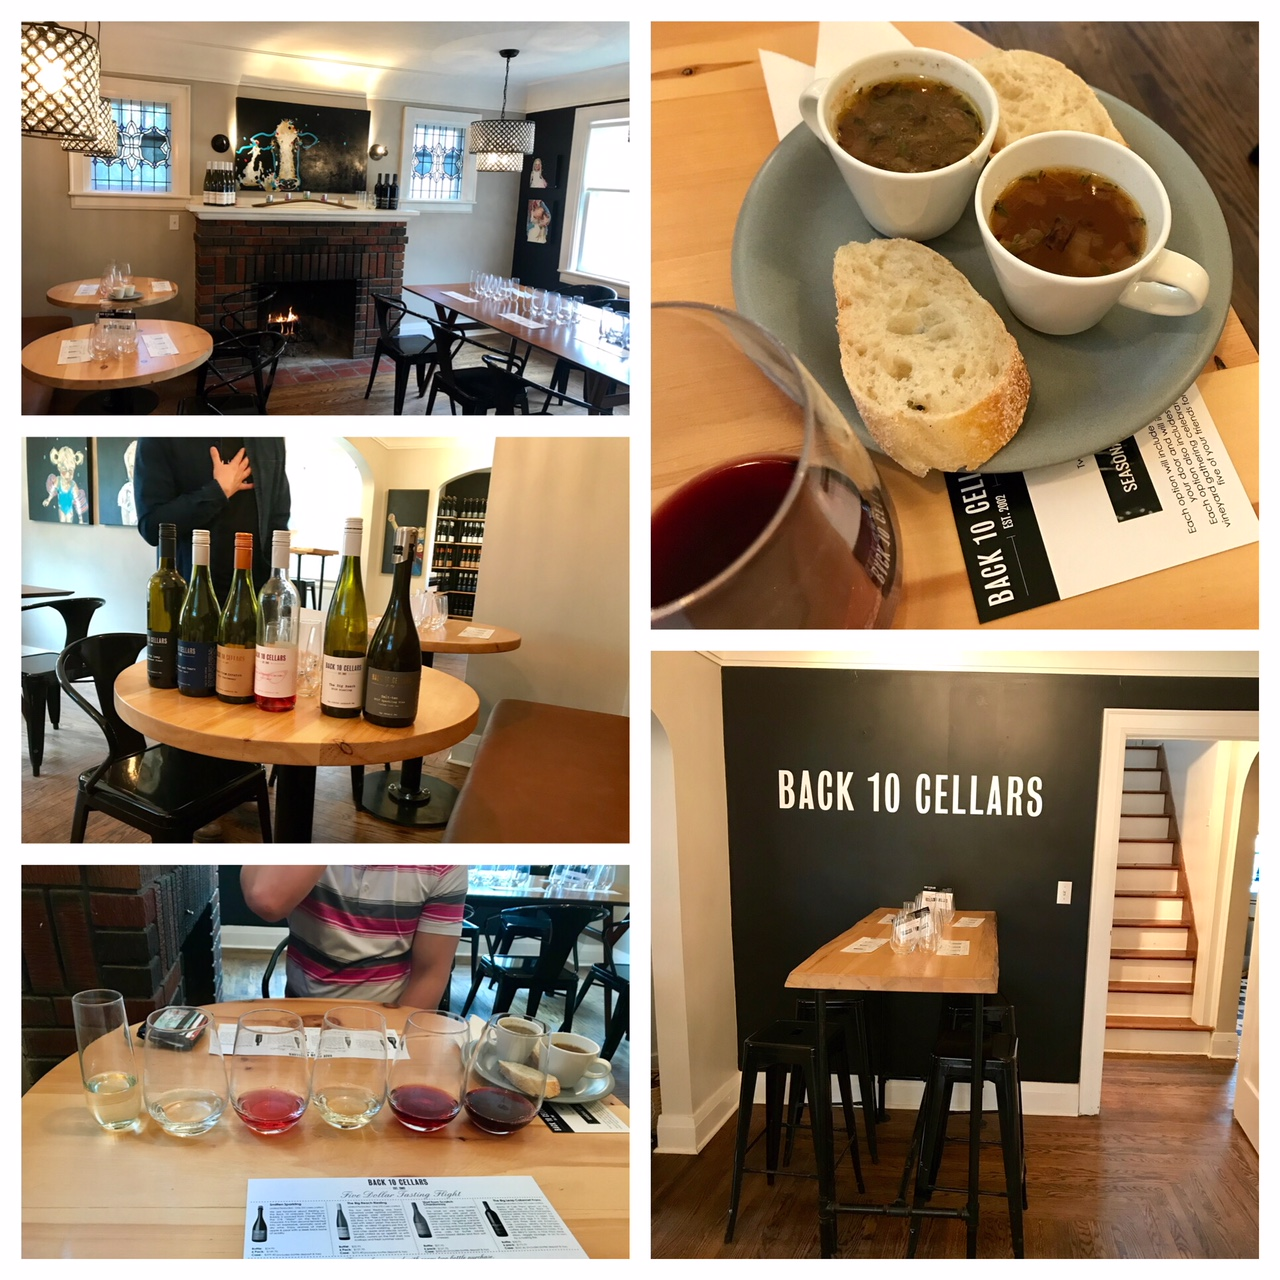 Collage of images from Back 10 Cellars